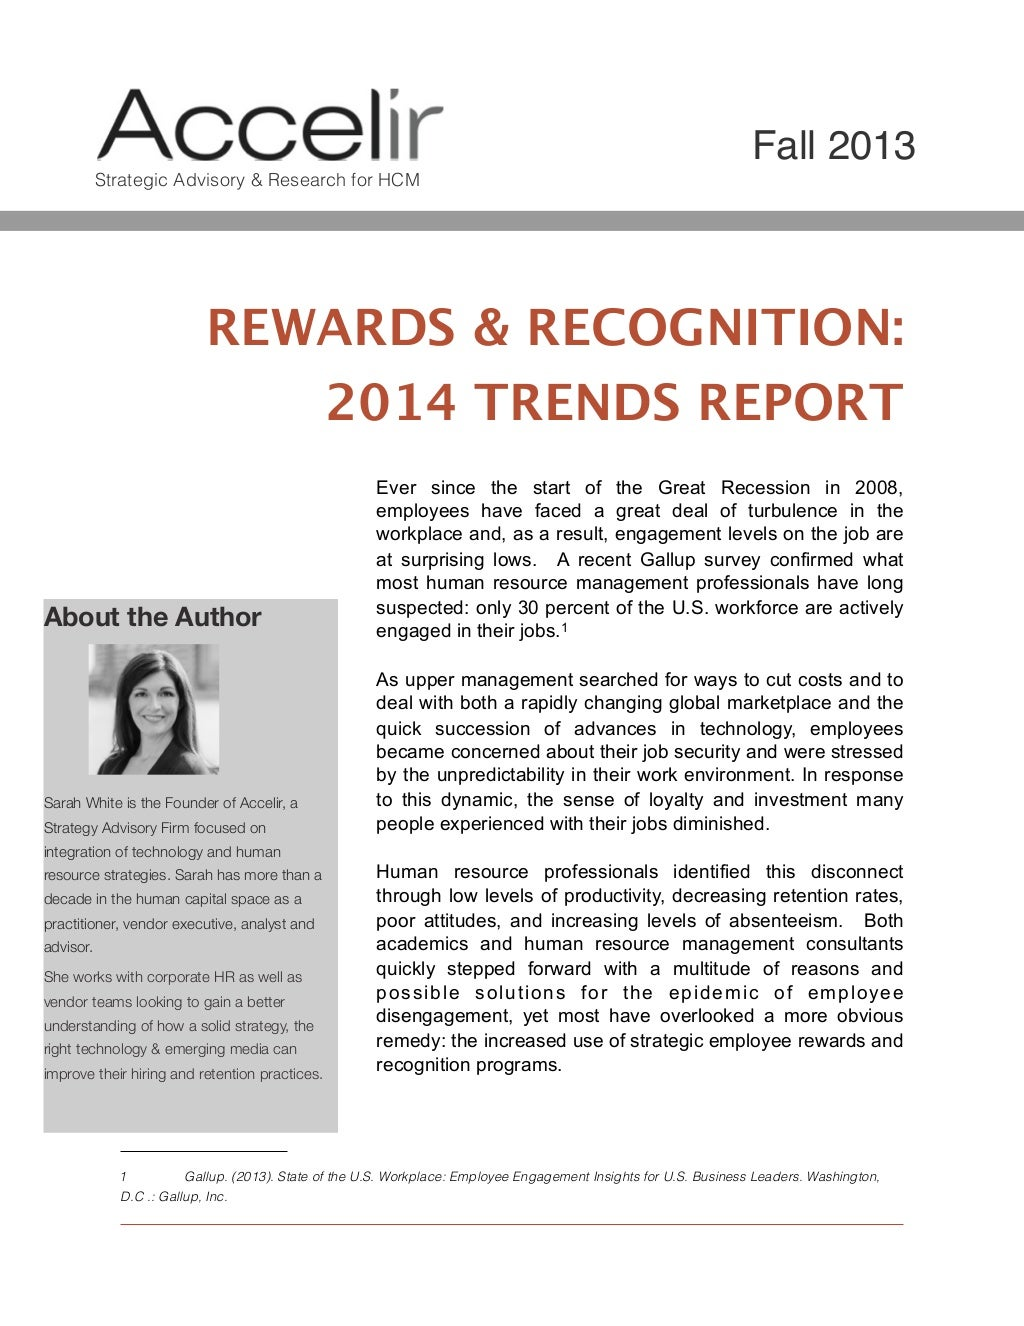 2014 Trends Report: Rewards and Recognition in Corporate Human Resources